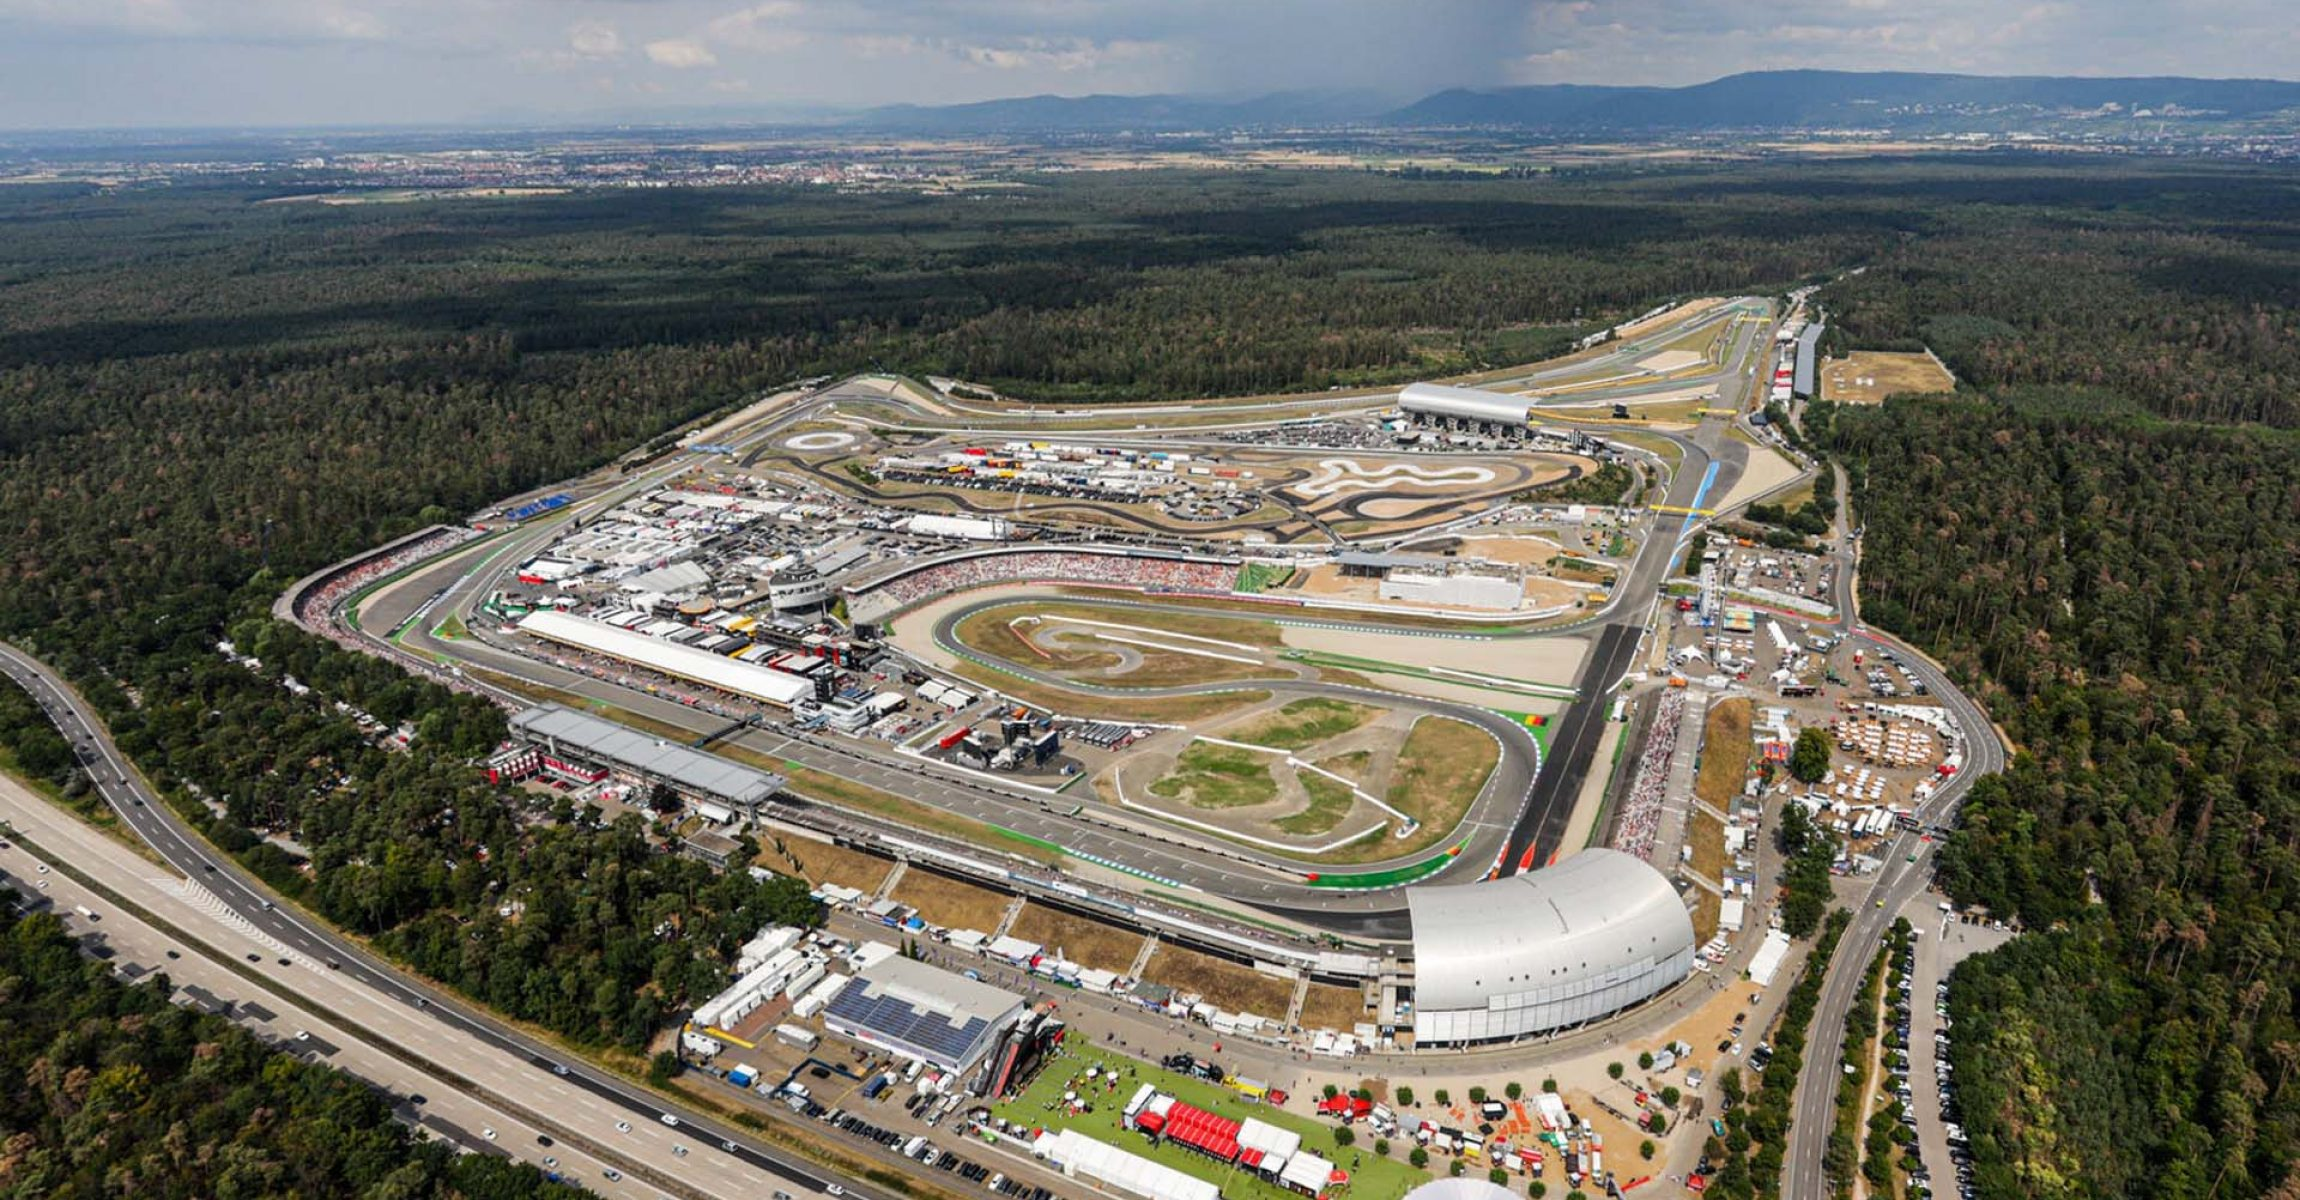 Hockenheimring, German Grand Prix,